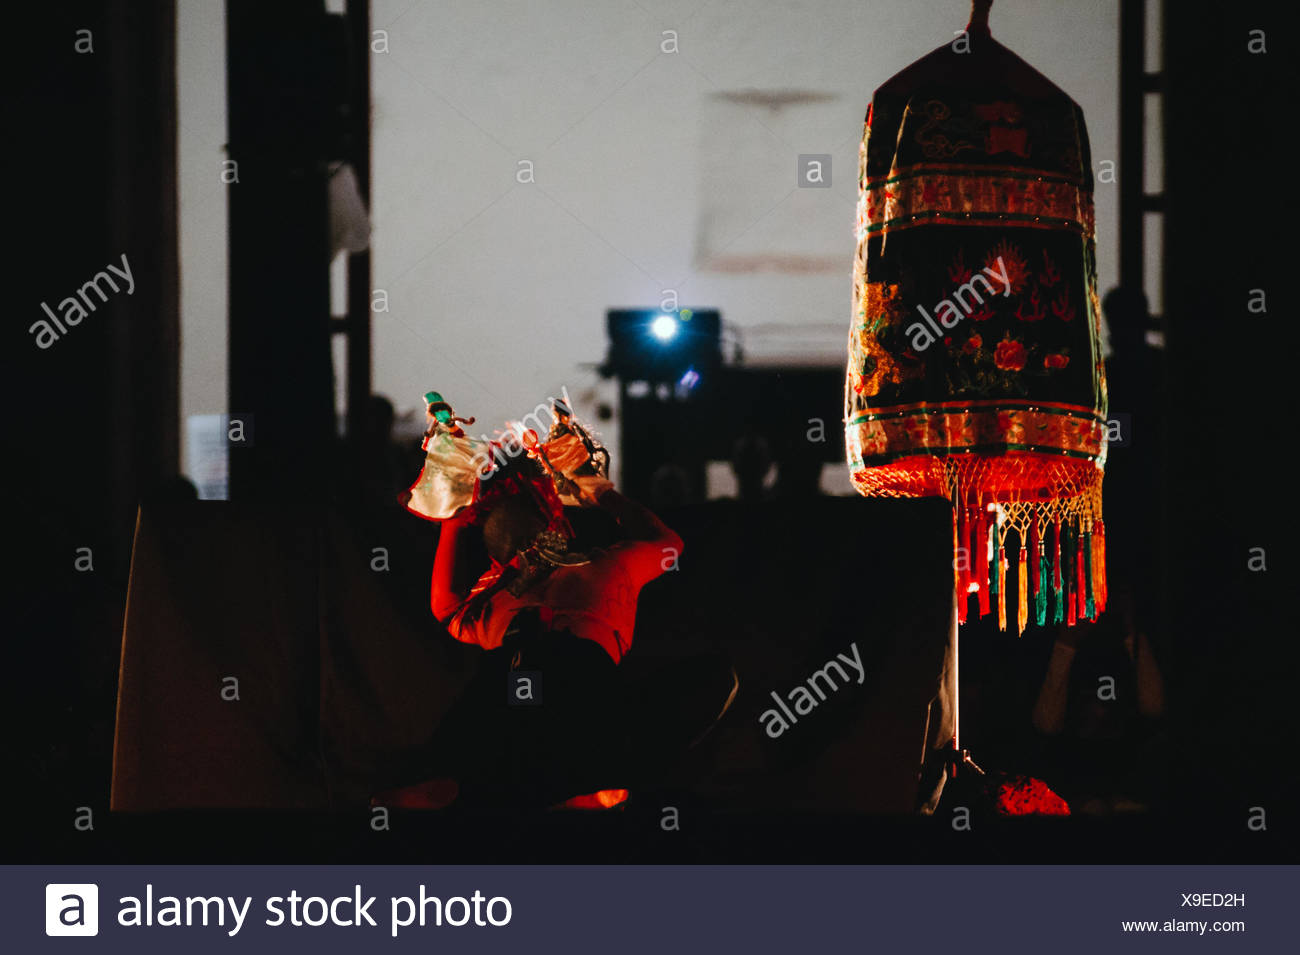 Rear View Of Dancer On Stage At Night - Stock Image